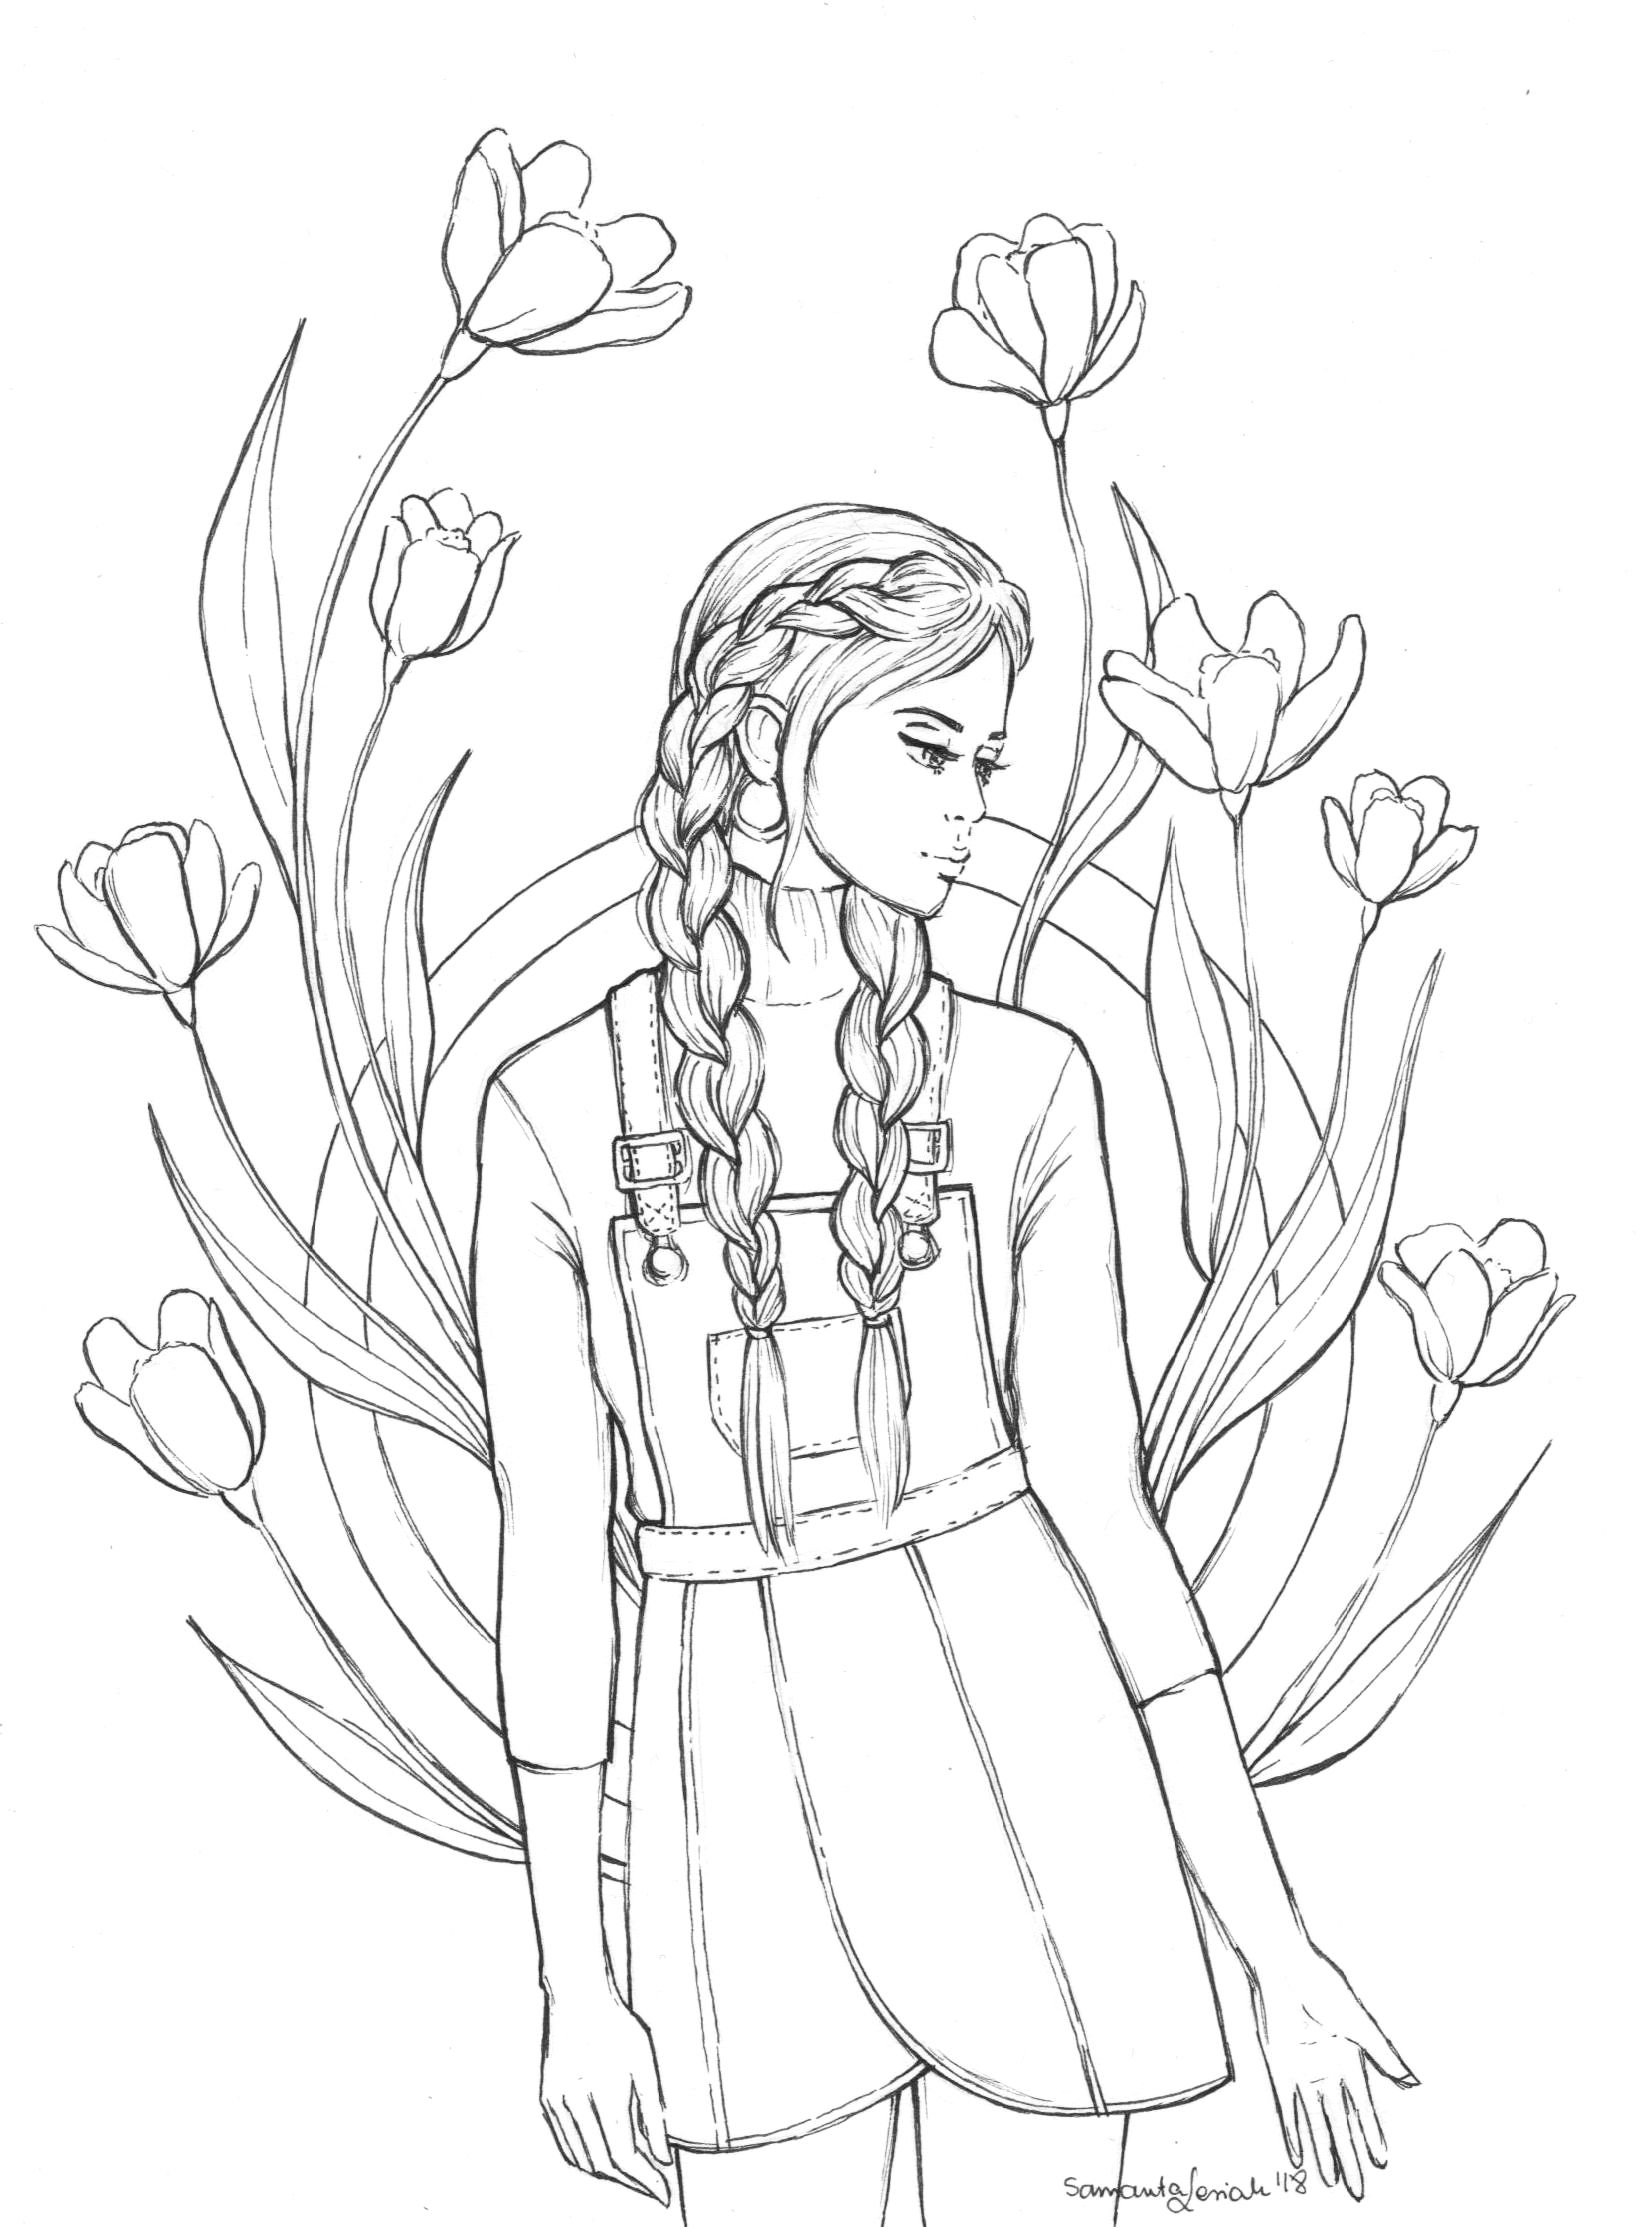 Rysunek Zrobiony Przez Sami Https Www Youtube Com Watch V Ghk2e Njidu Nature Sketch Cute Coloring Pages Drawing Images